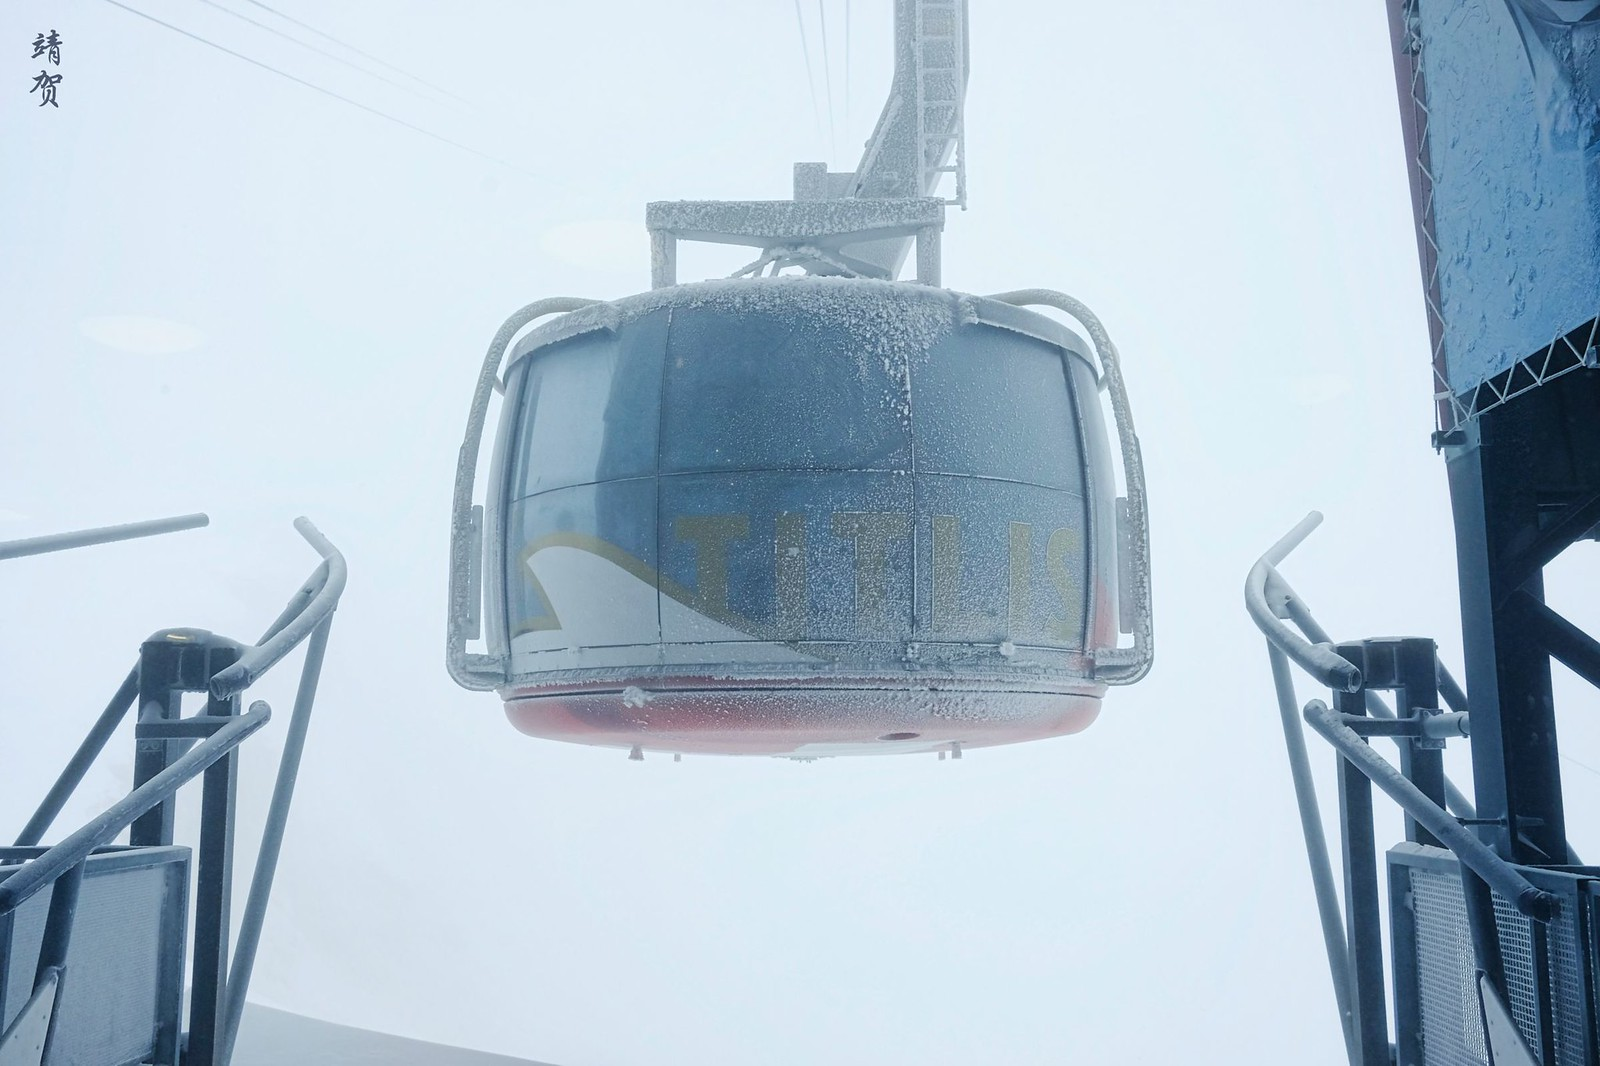 Rotair rotating cable car